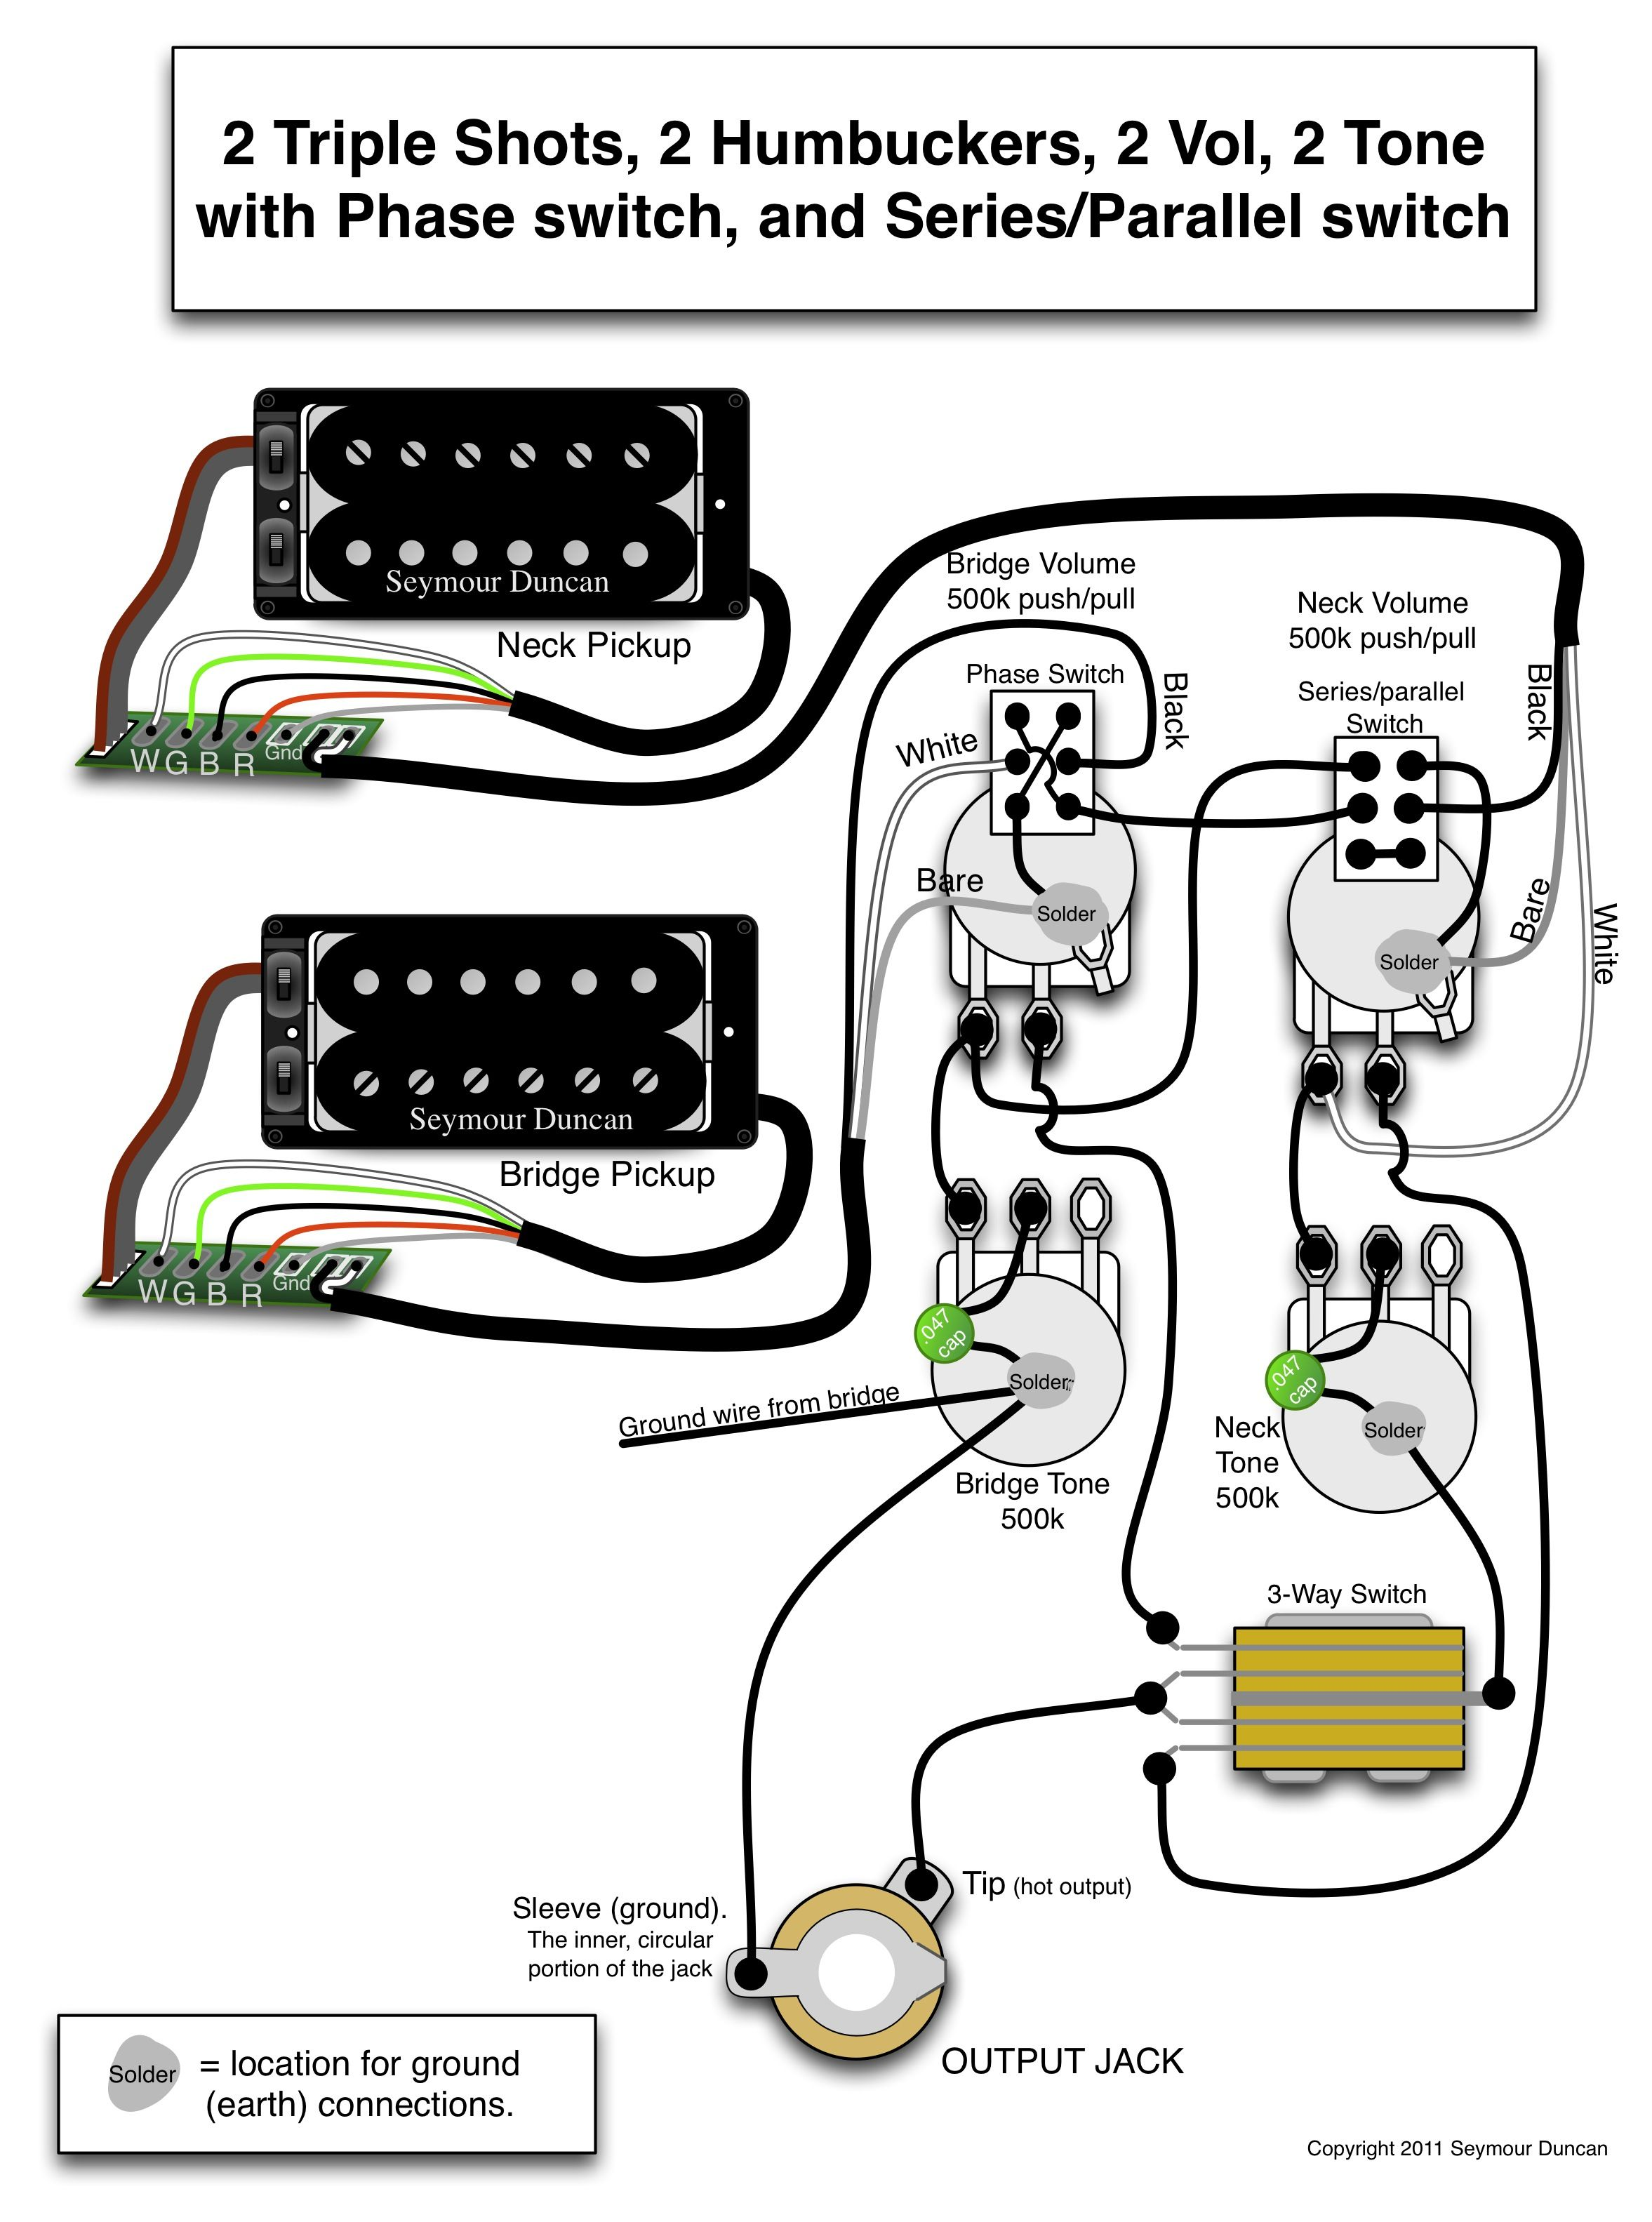 seymour duncan wiring diagram 2 triple shots 2 humbuckers 2 vol rh pinterest co uk Single Pickup Wiring Diagram Single Pickup Wiring Diagram